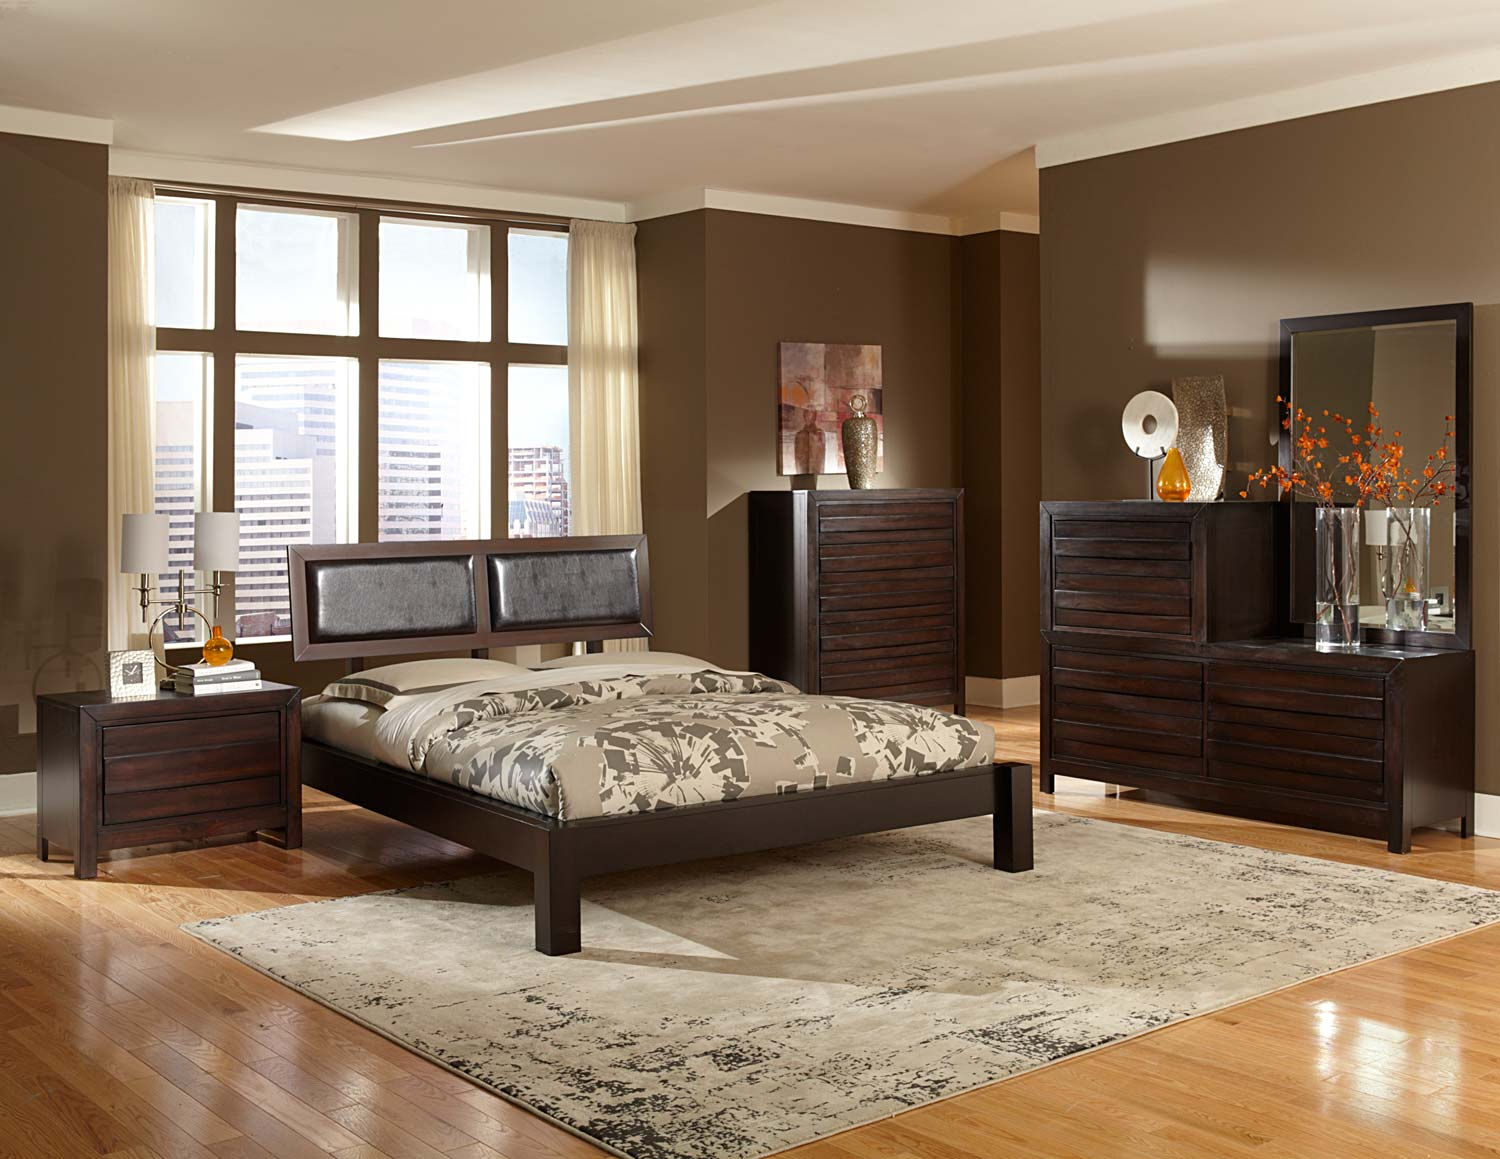 Bedroom Furniture Espresso bedroom collections espresso - home design living room furniture